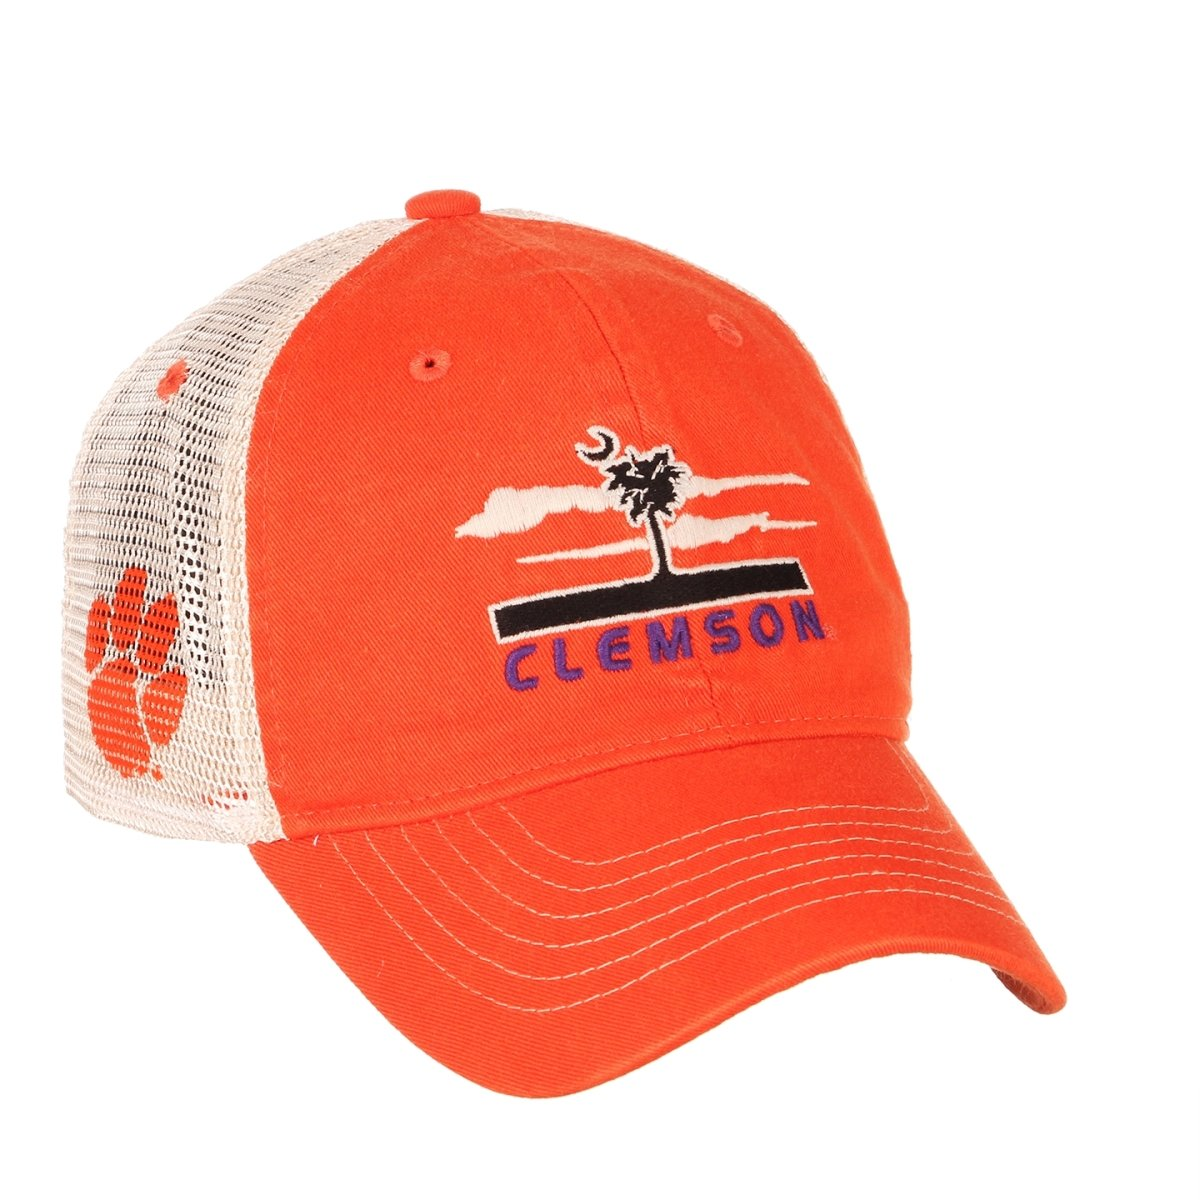 Clemson Tigers Destination Palmetto Tree Trucker Hat - Orange - Mr. Knickerbocker